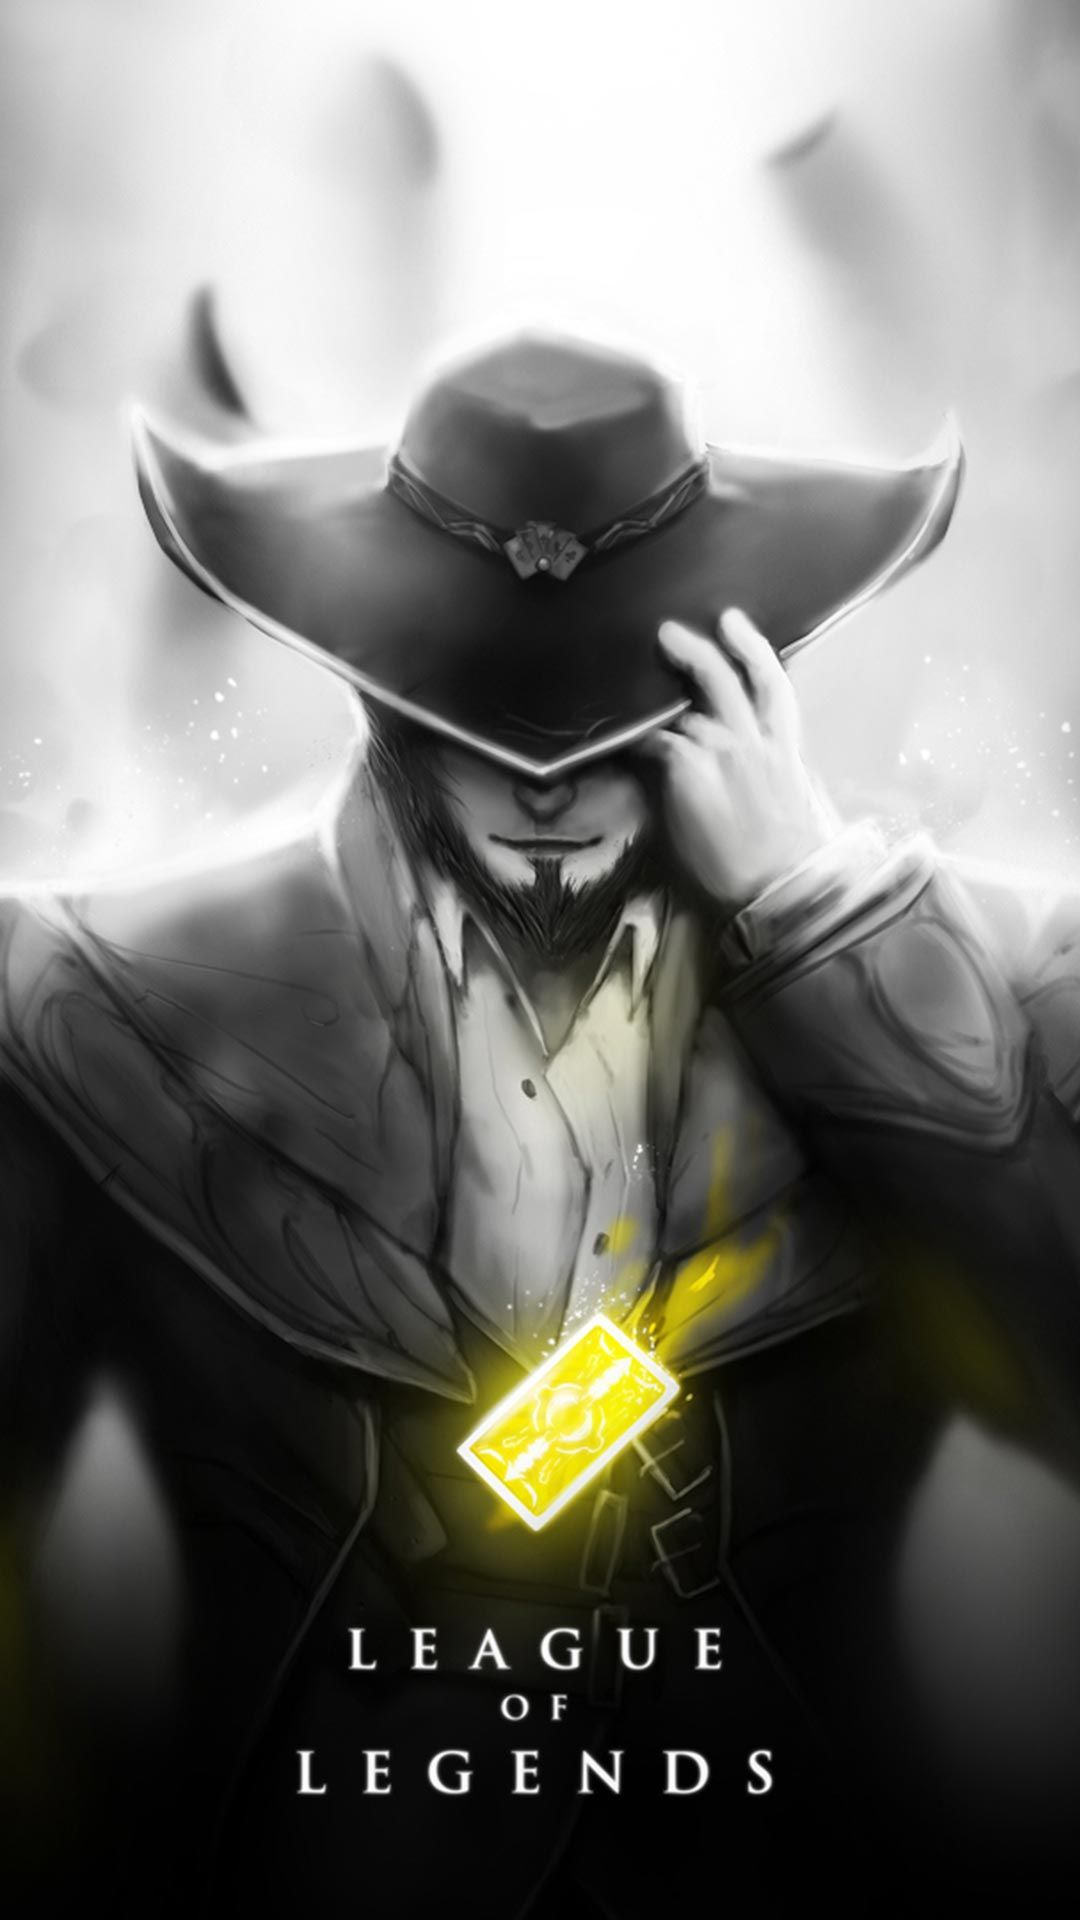 twisted fate skin black and white android, iphone wallpaper, mobile